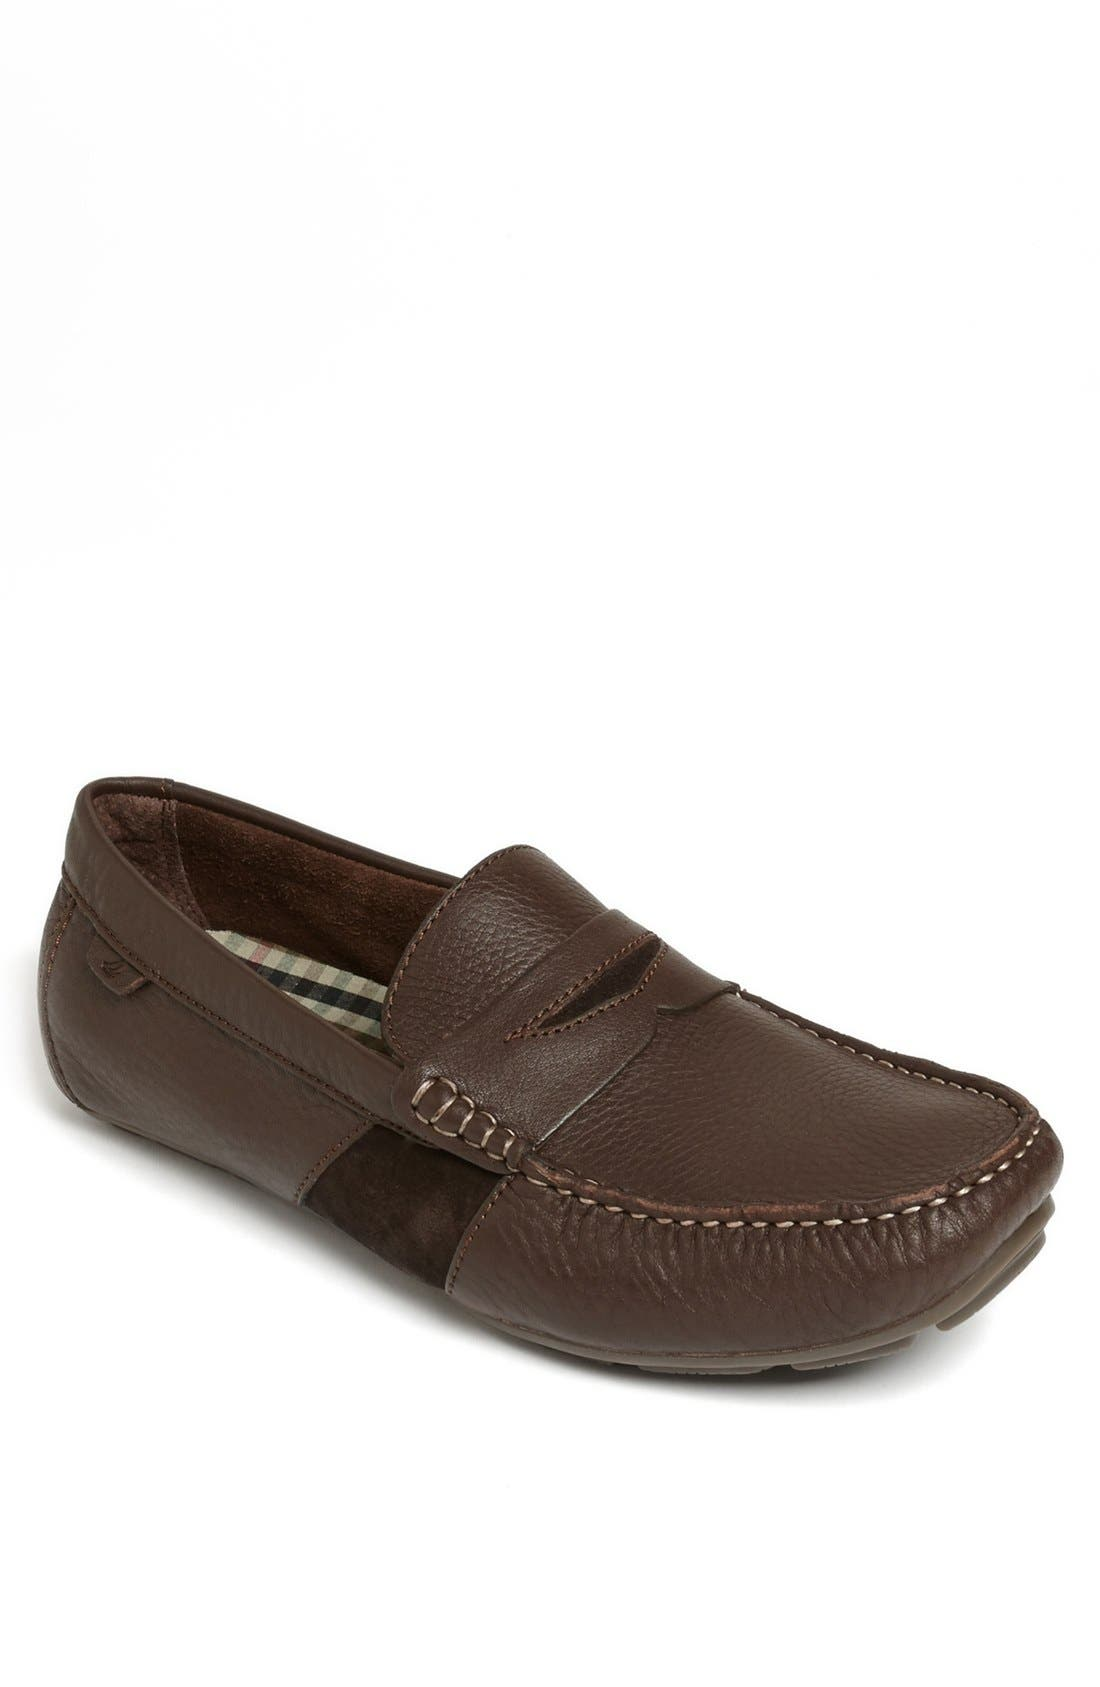 Sperry Top-Sider® 'Wave Driver' Driving Shoe